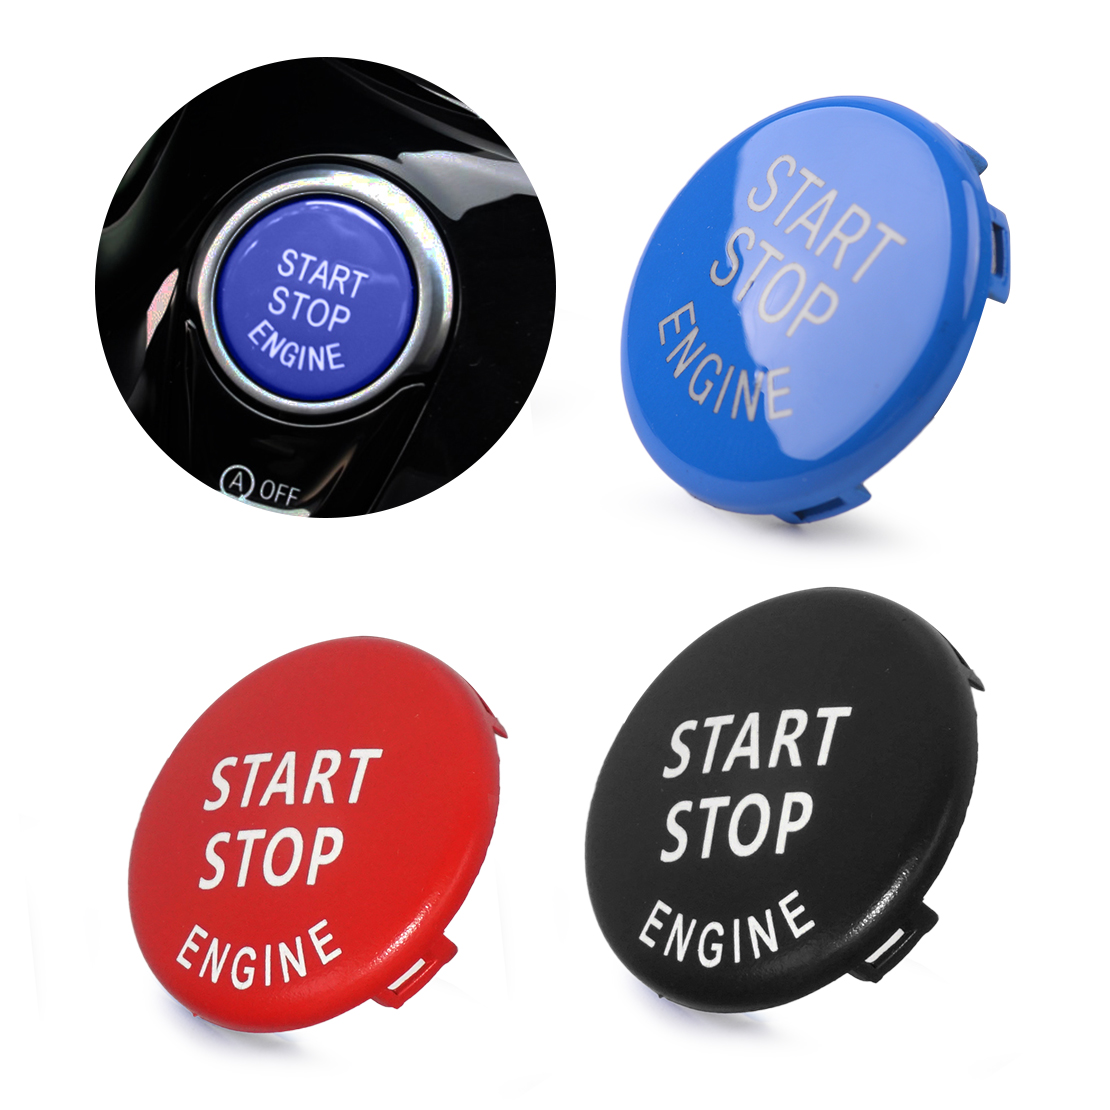 DWCX ABS Car Engine Ignition Start Stop Switch Push Button Ring Trim Cover Fit For BMW 3 5 Series E90 E91 E92 E93 E60 image